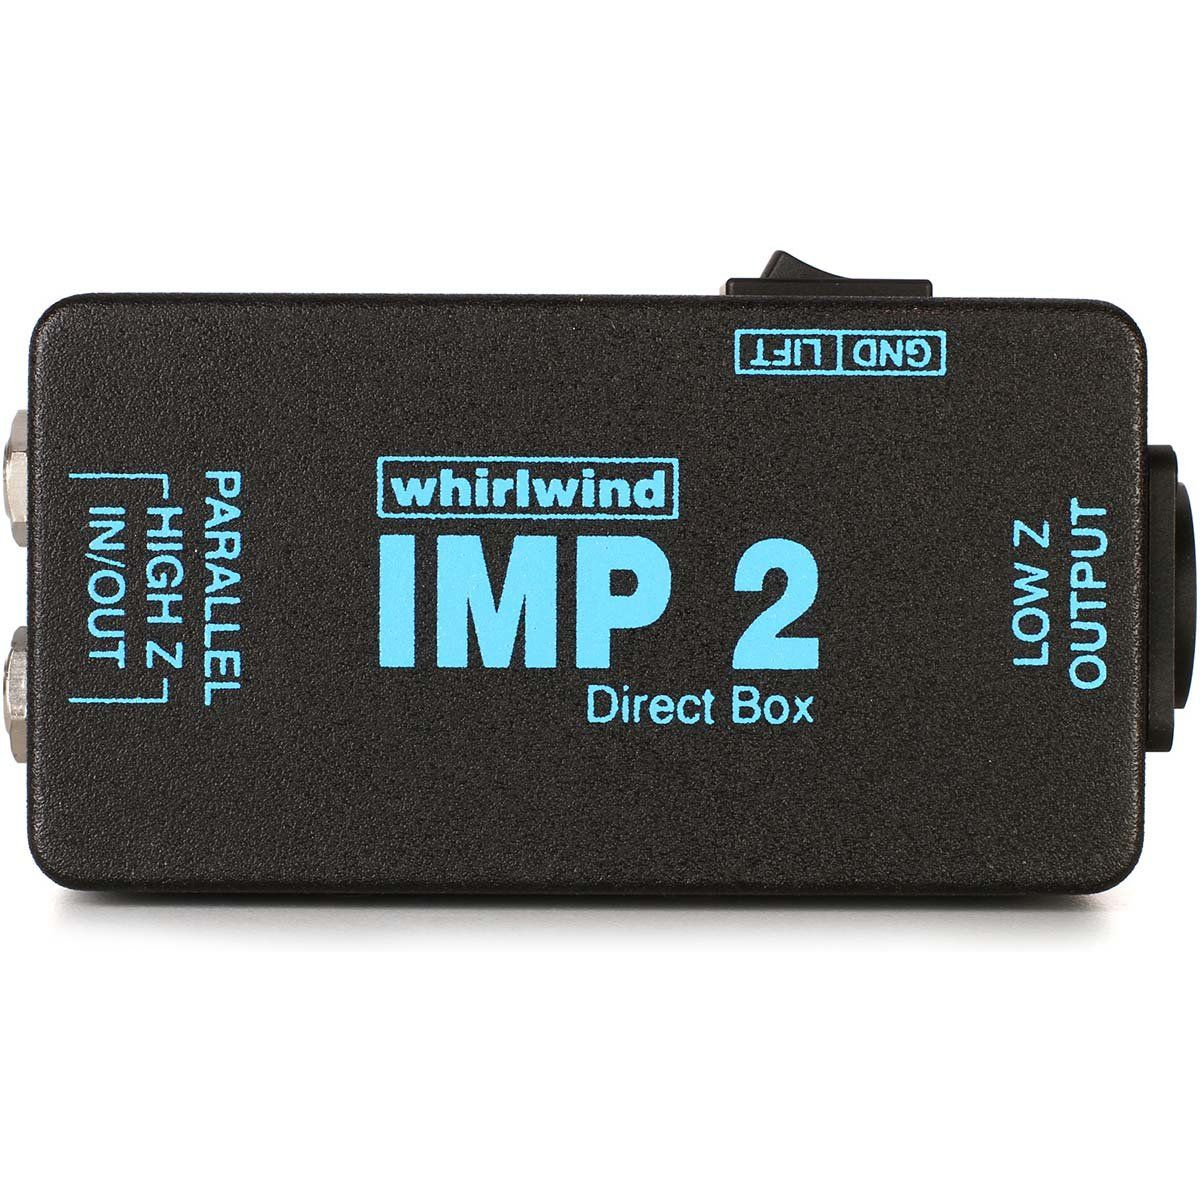 Whirlwind IMP 2 Processador Whirlwind IMP 2 Direct Box